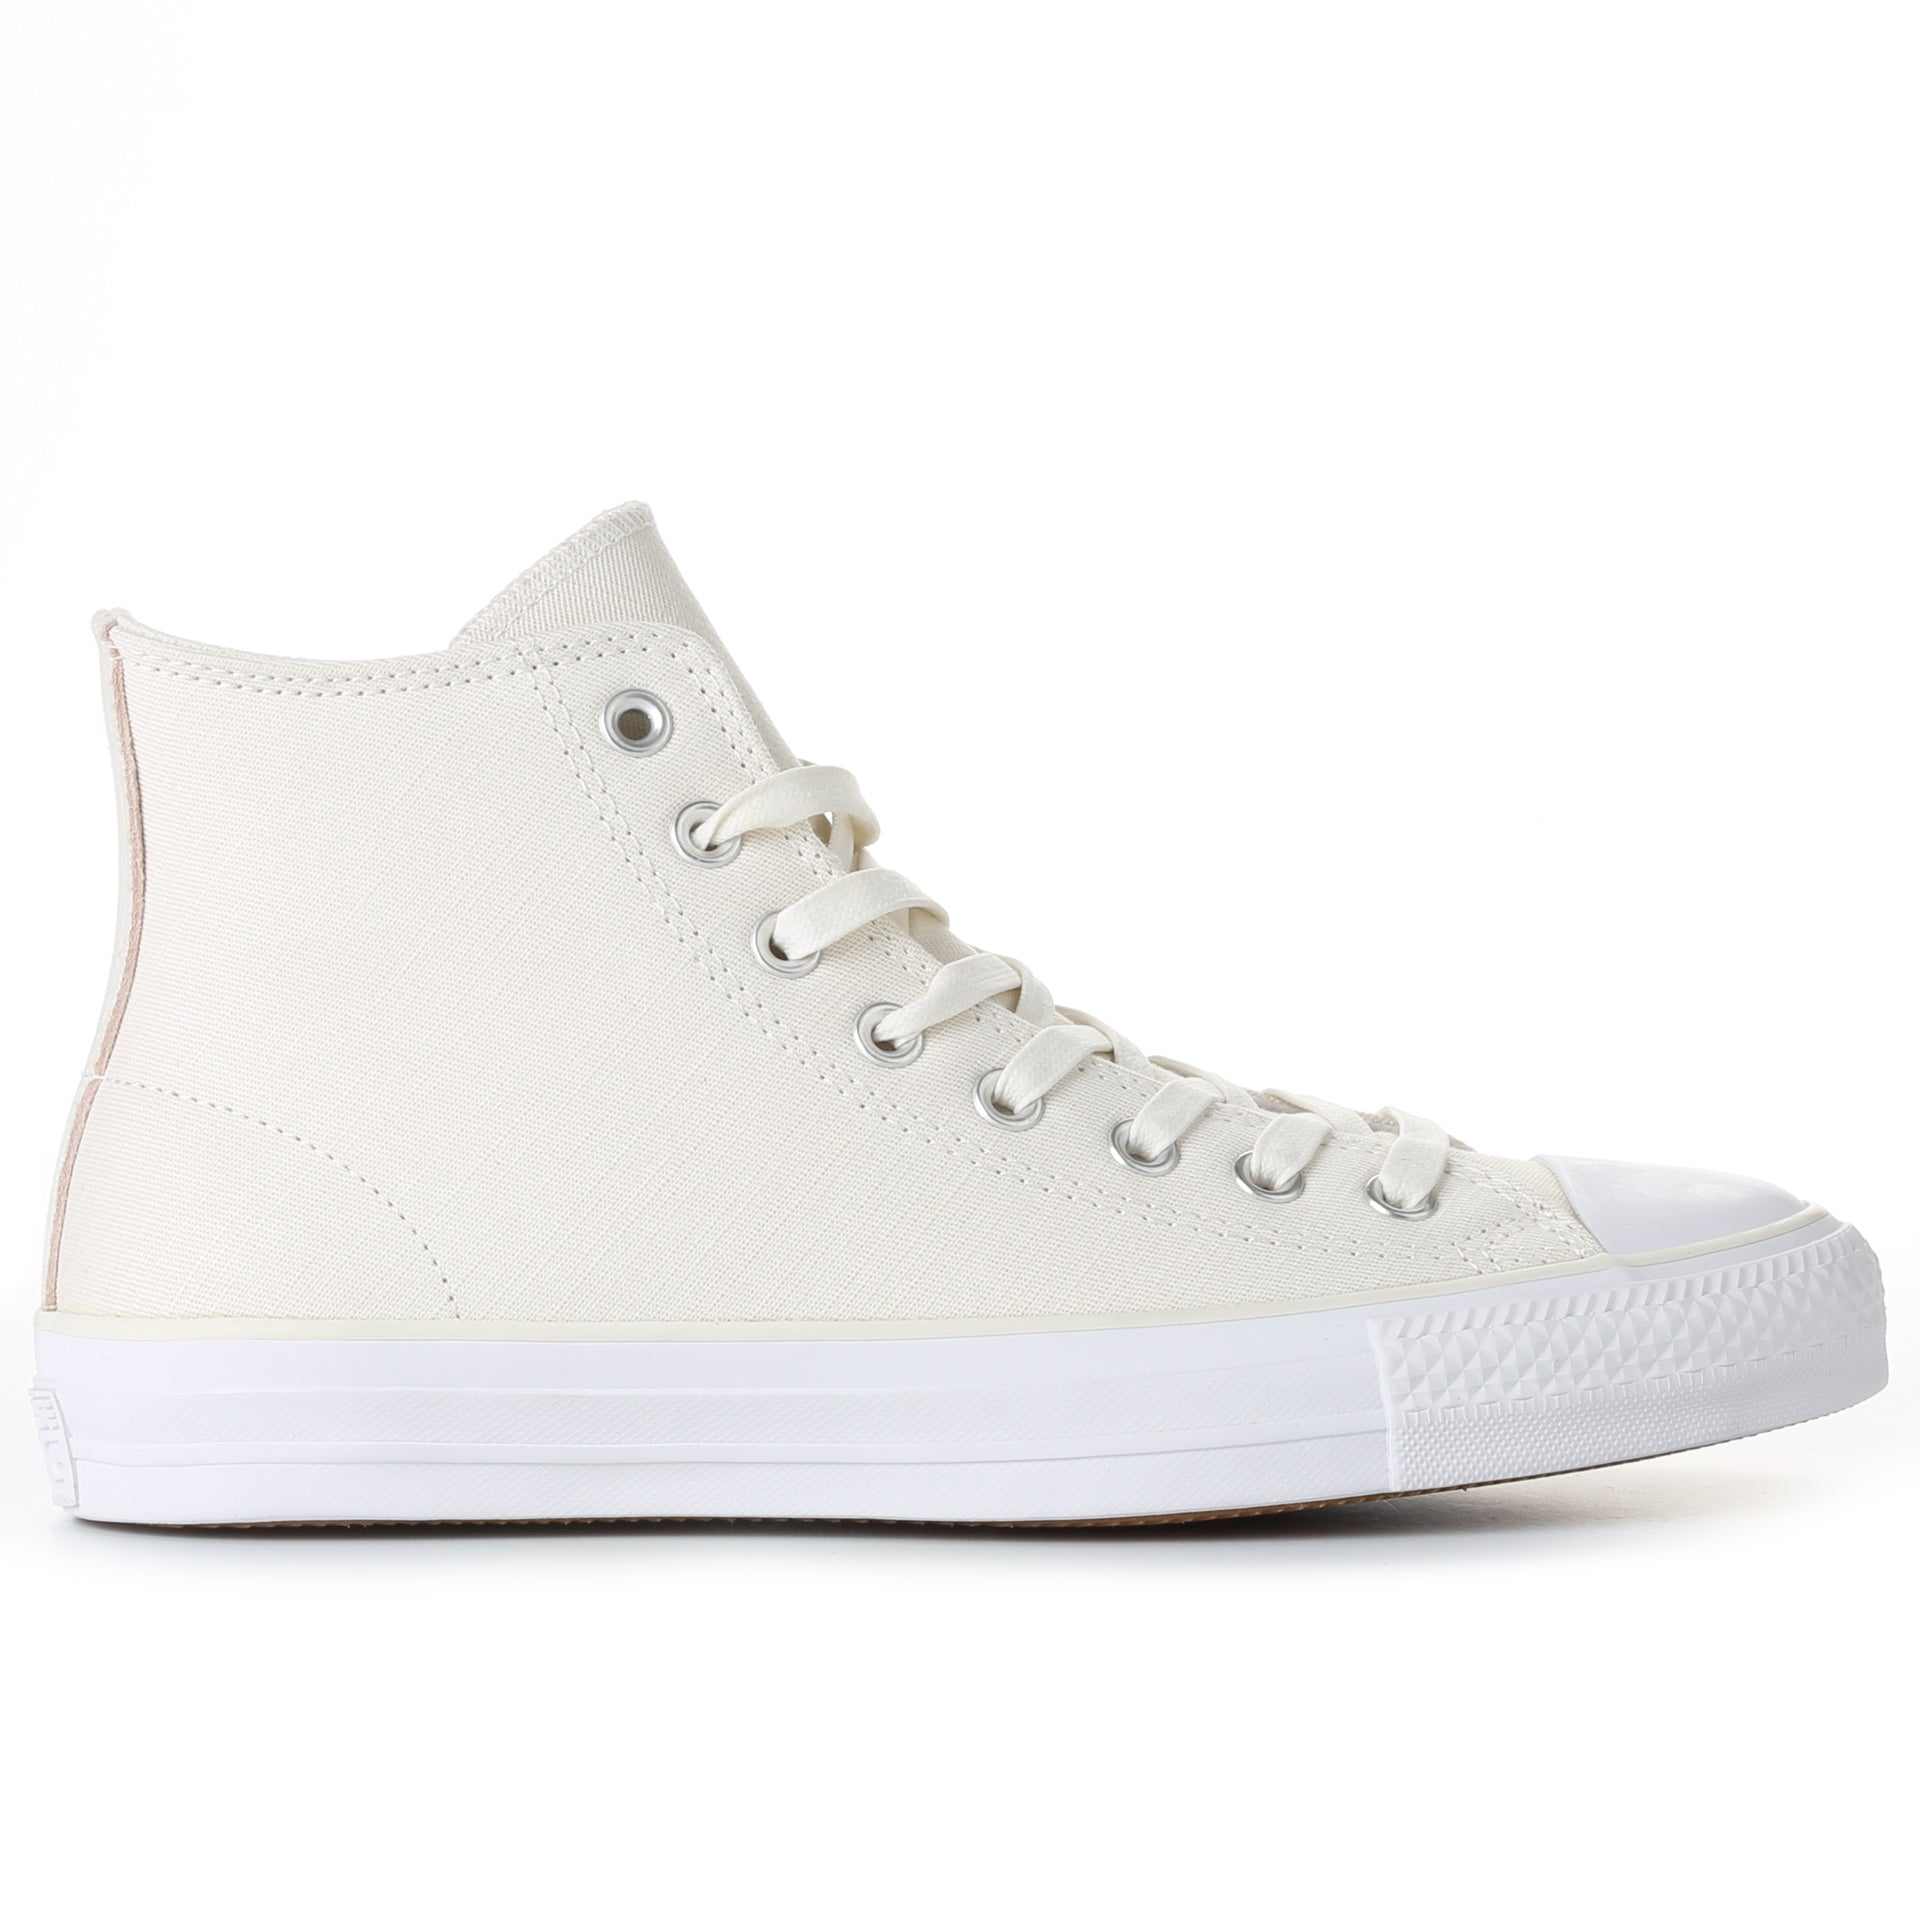 541fe92367e453 Converse CTAS Pro Suede Backed Twill High Top - Egret Dusk Pink ...